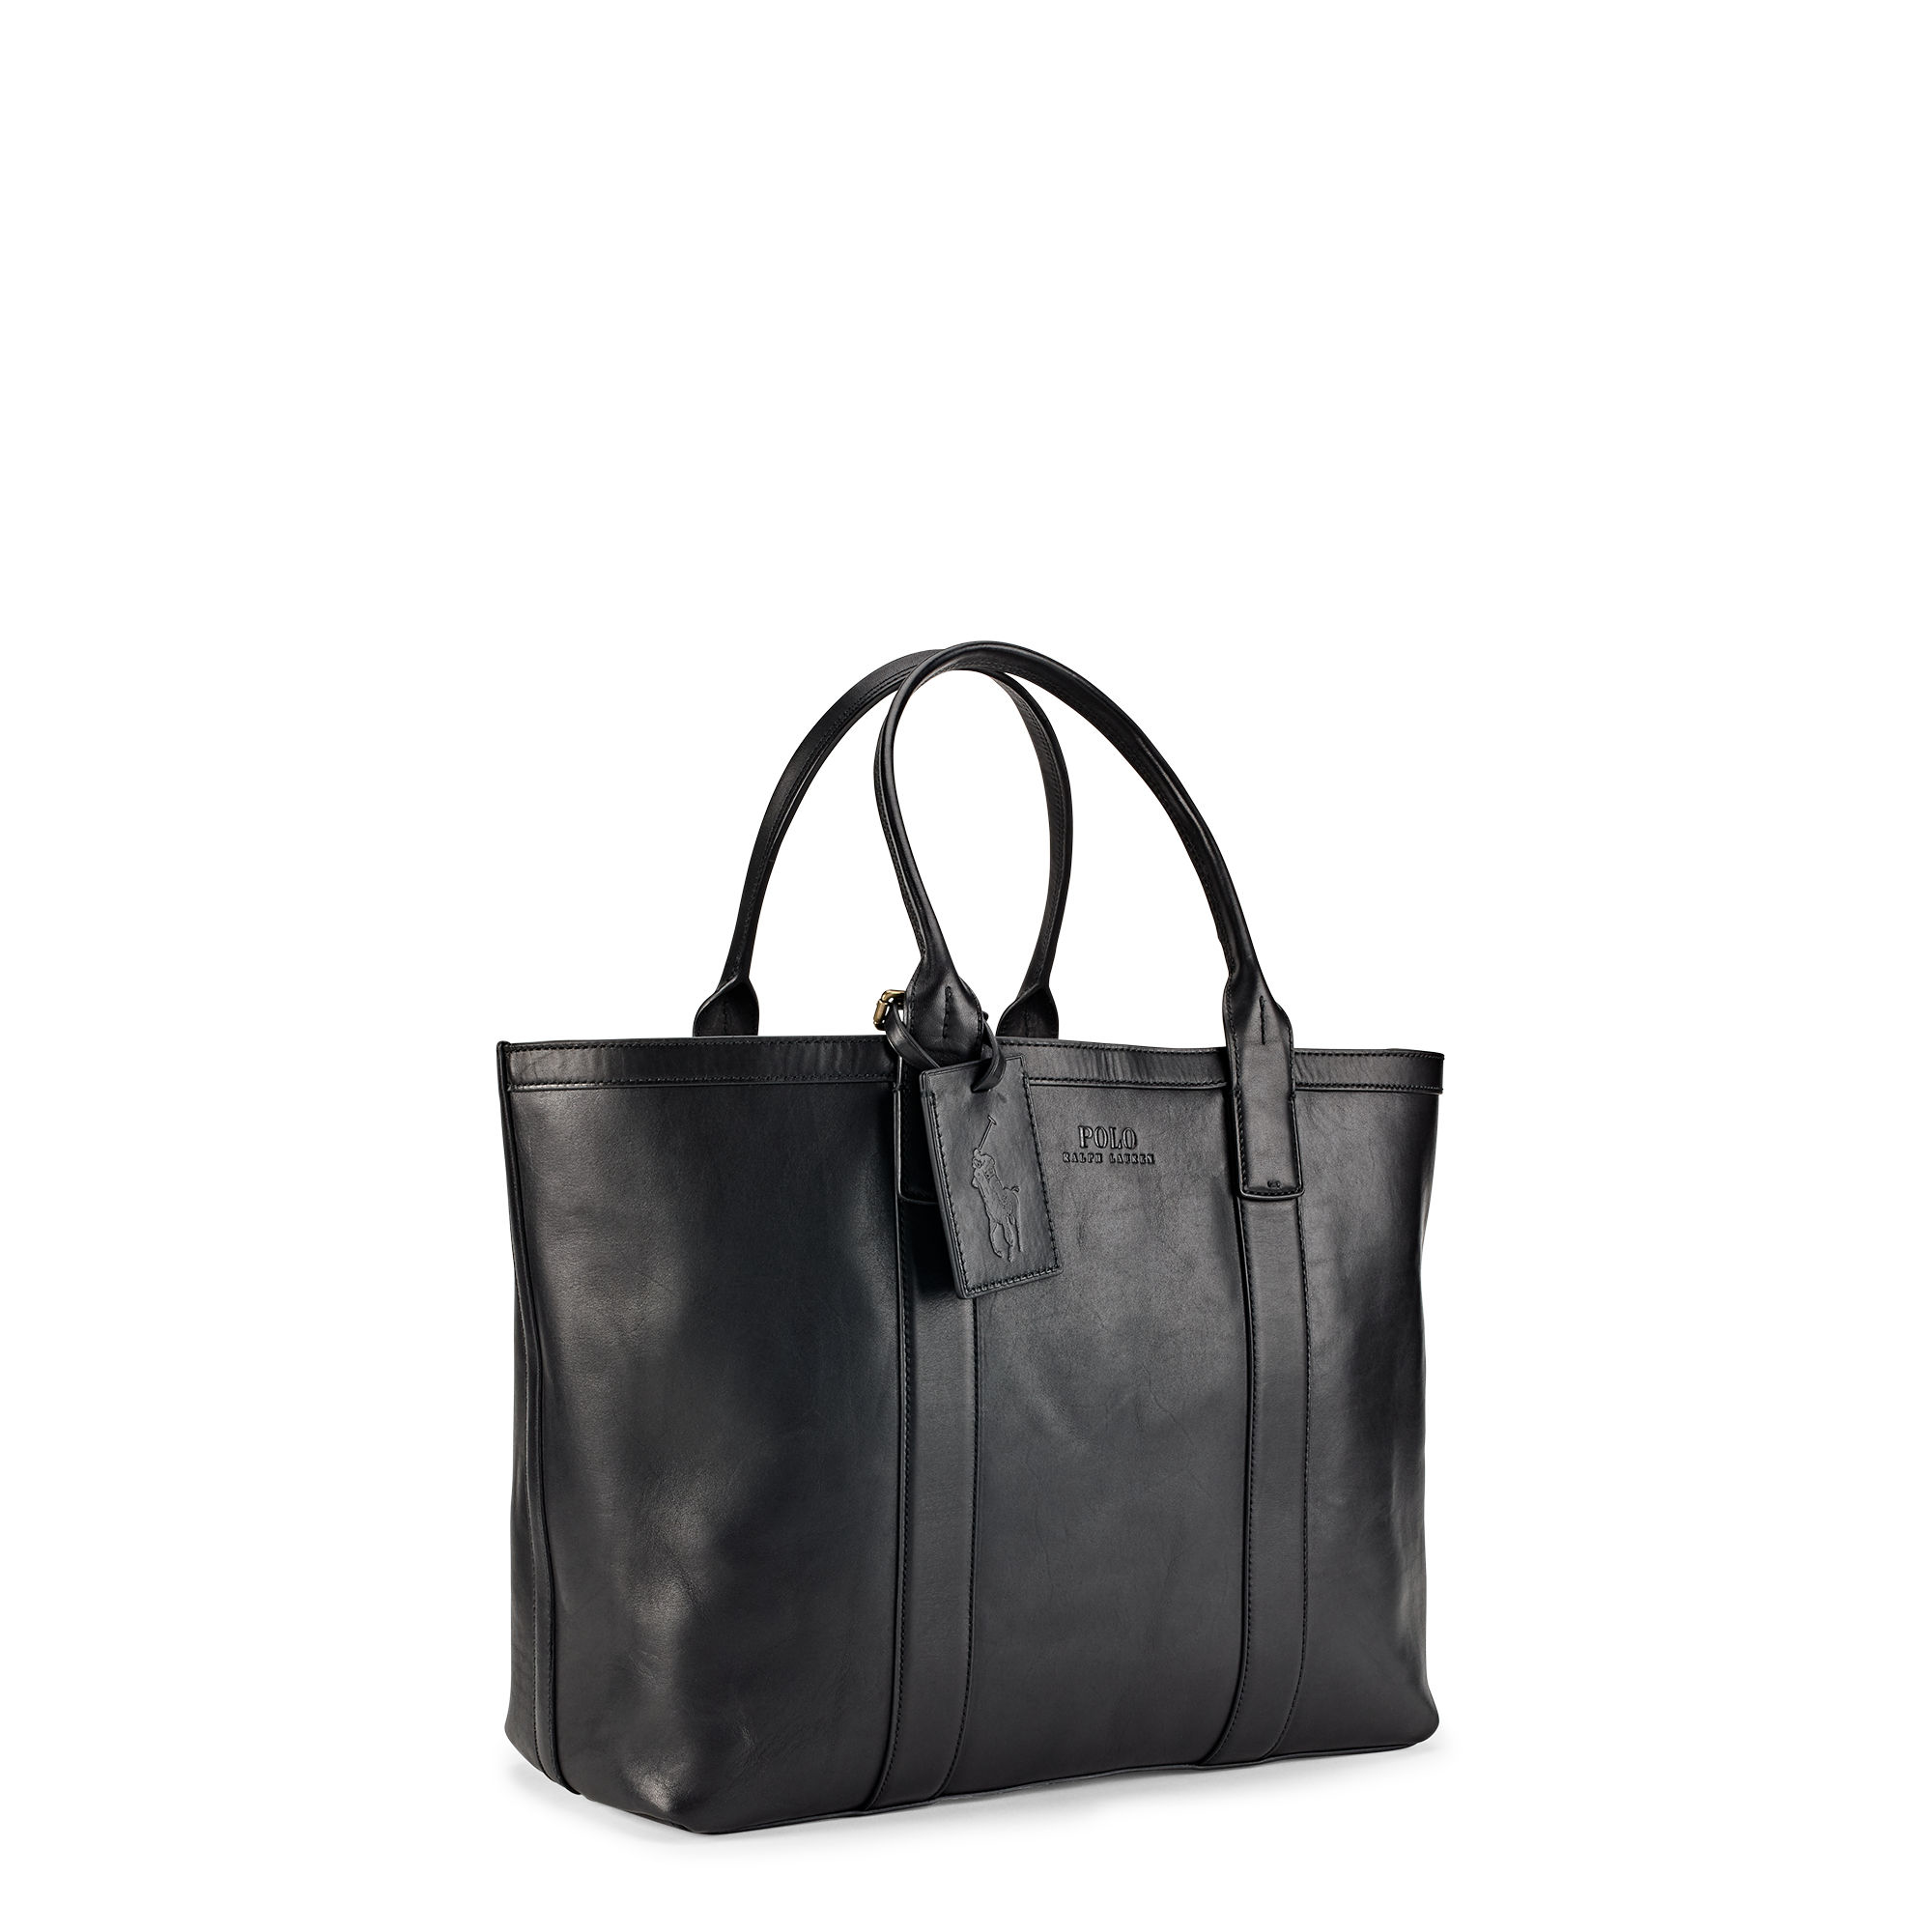 441d31b9b230 Polo Ralph Lauren Classic Leather Tote in Black for Men - Lyst